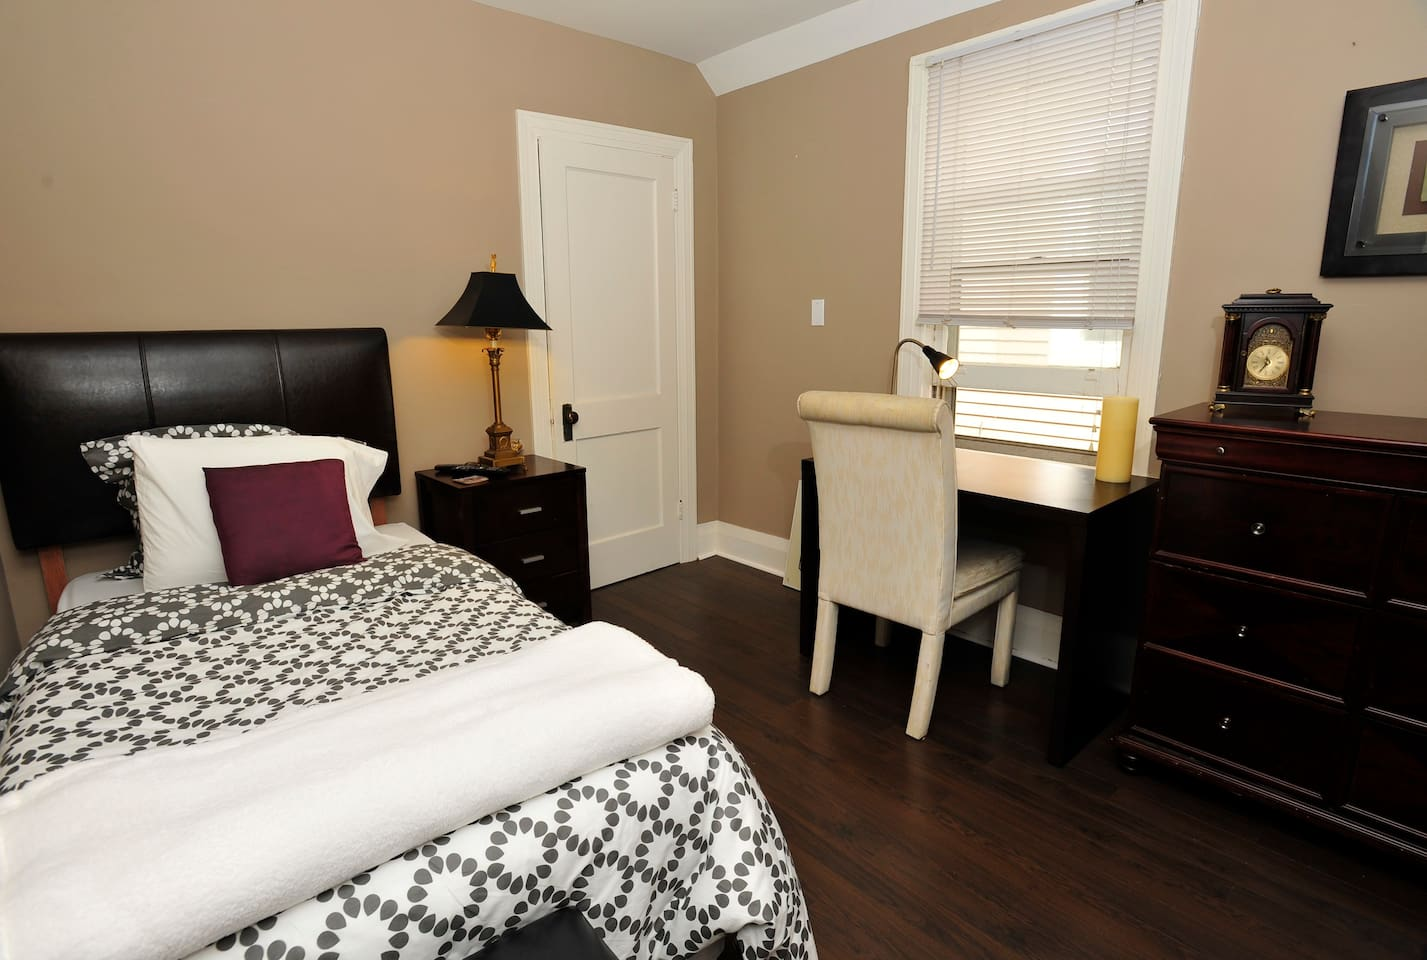 Middle bedroom - Foam mattress, study area and plenty of storage with chest of drawers and closet